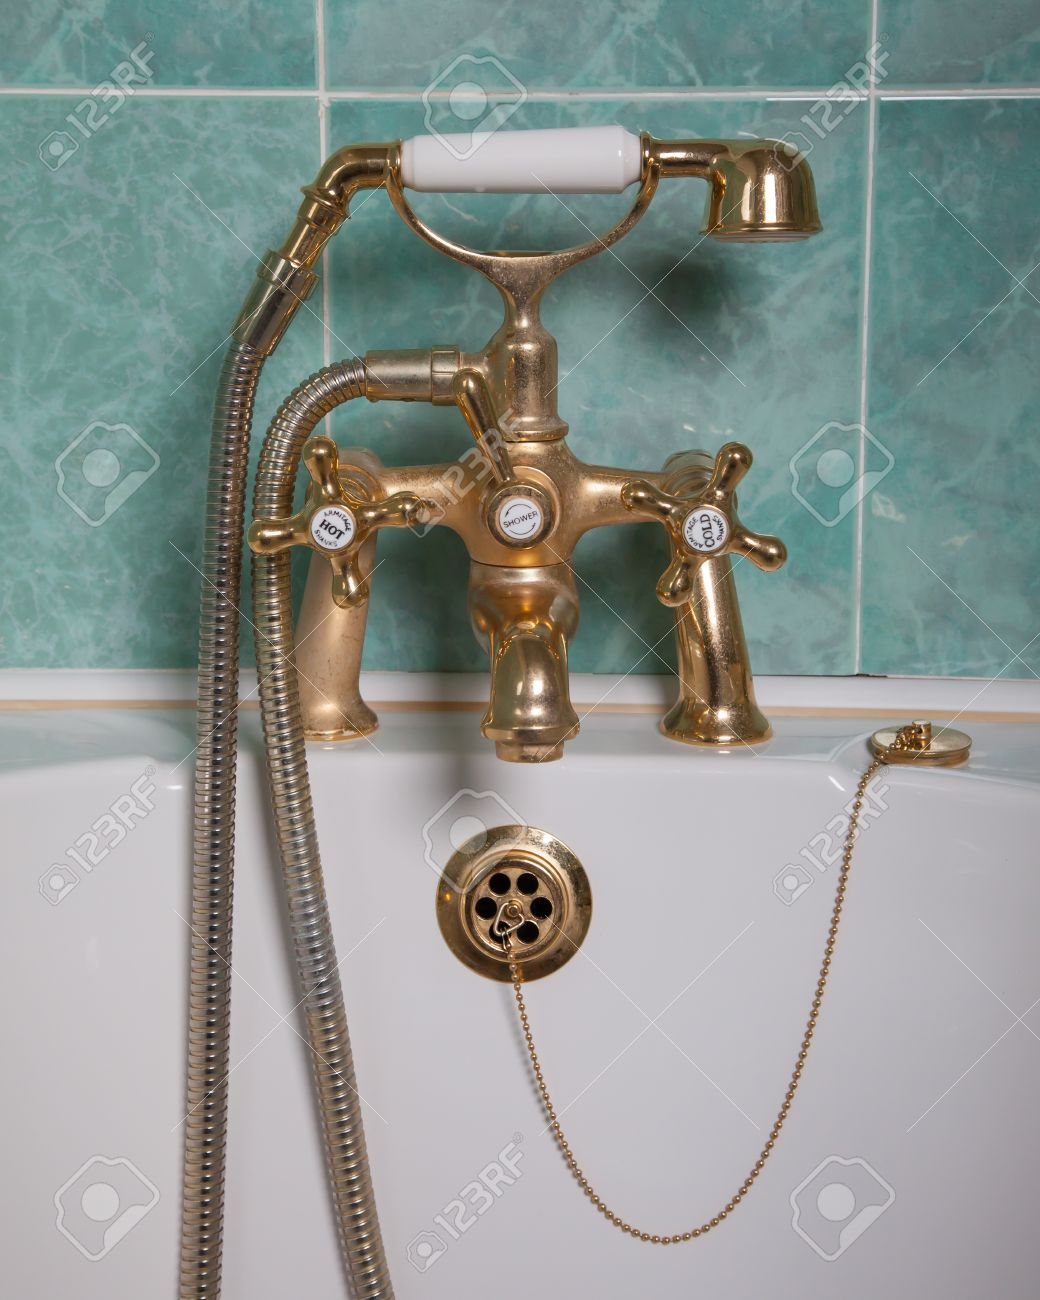 Vintage Bath Taps, Golden Tap With A Green Wall Stock Photo ...